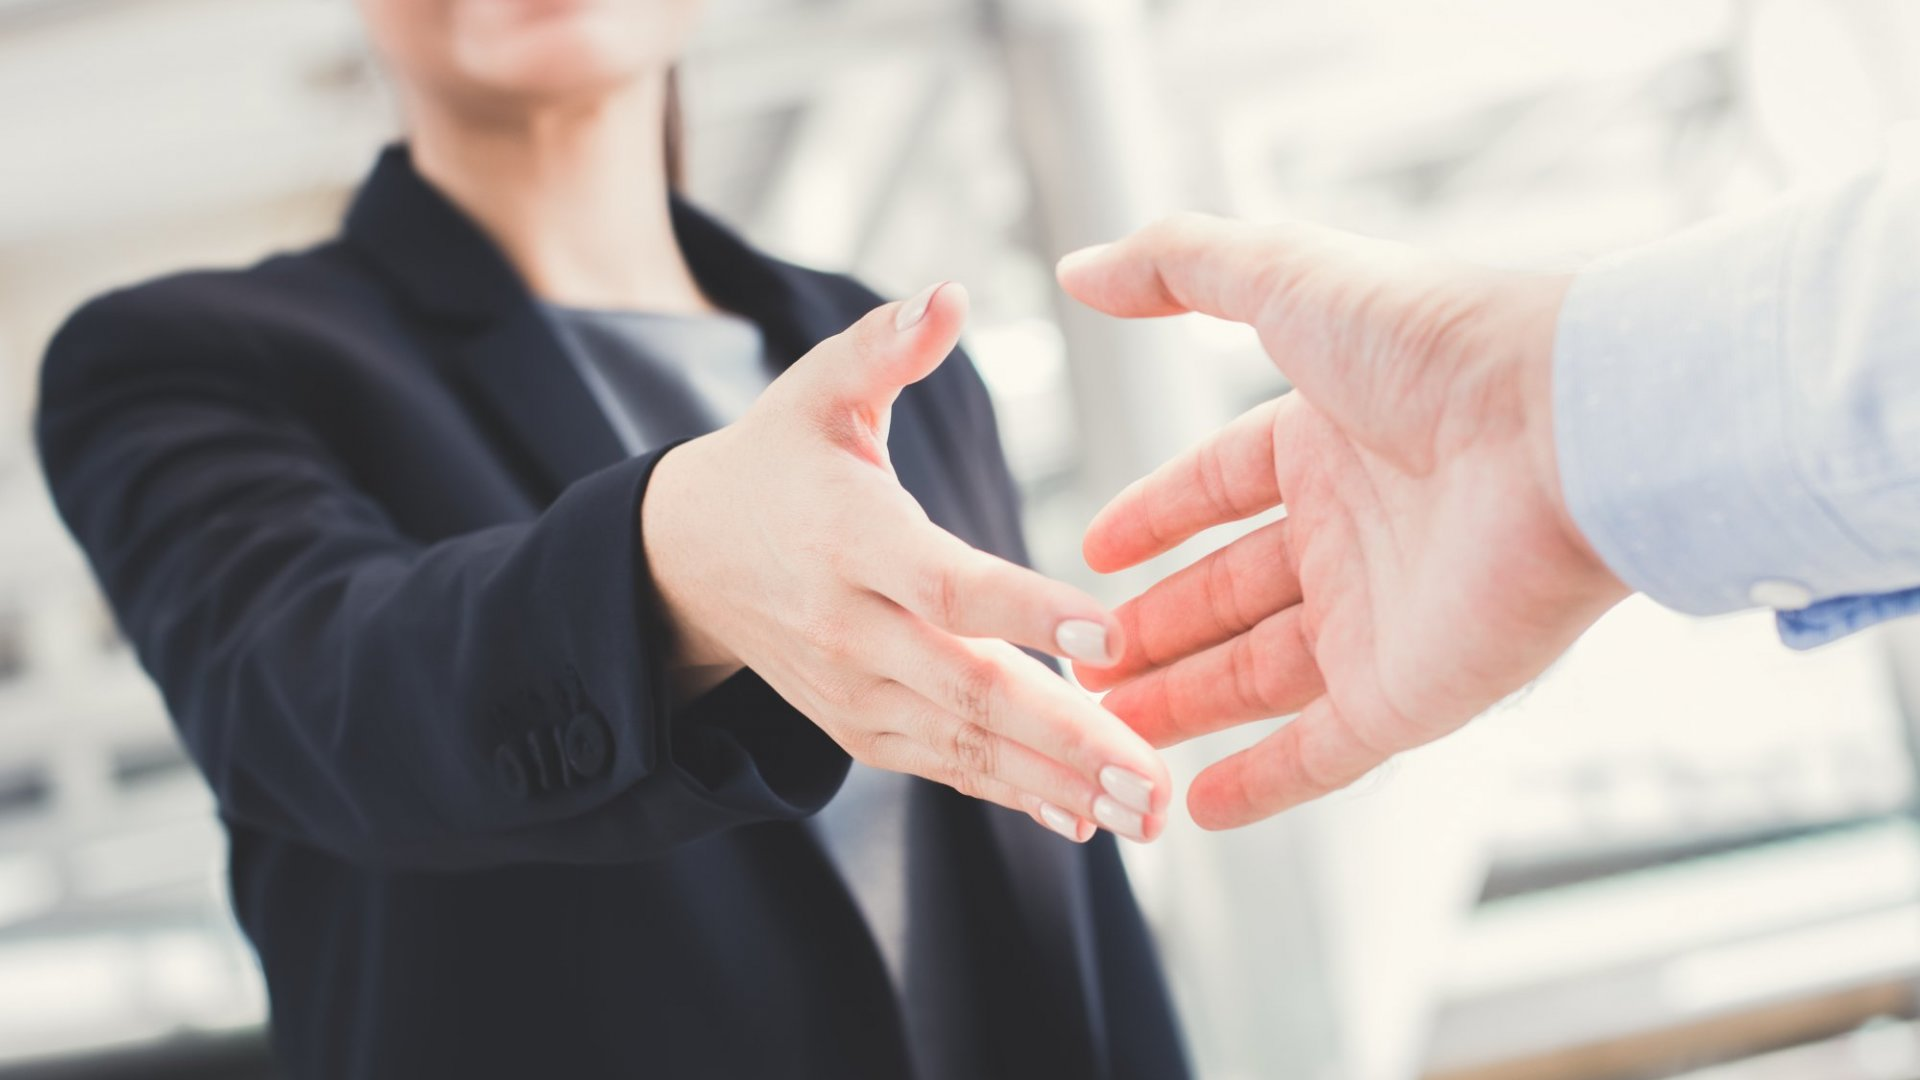 6 Key Considerations to Take Before Diving Into a New Business Partnership